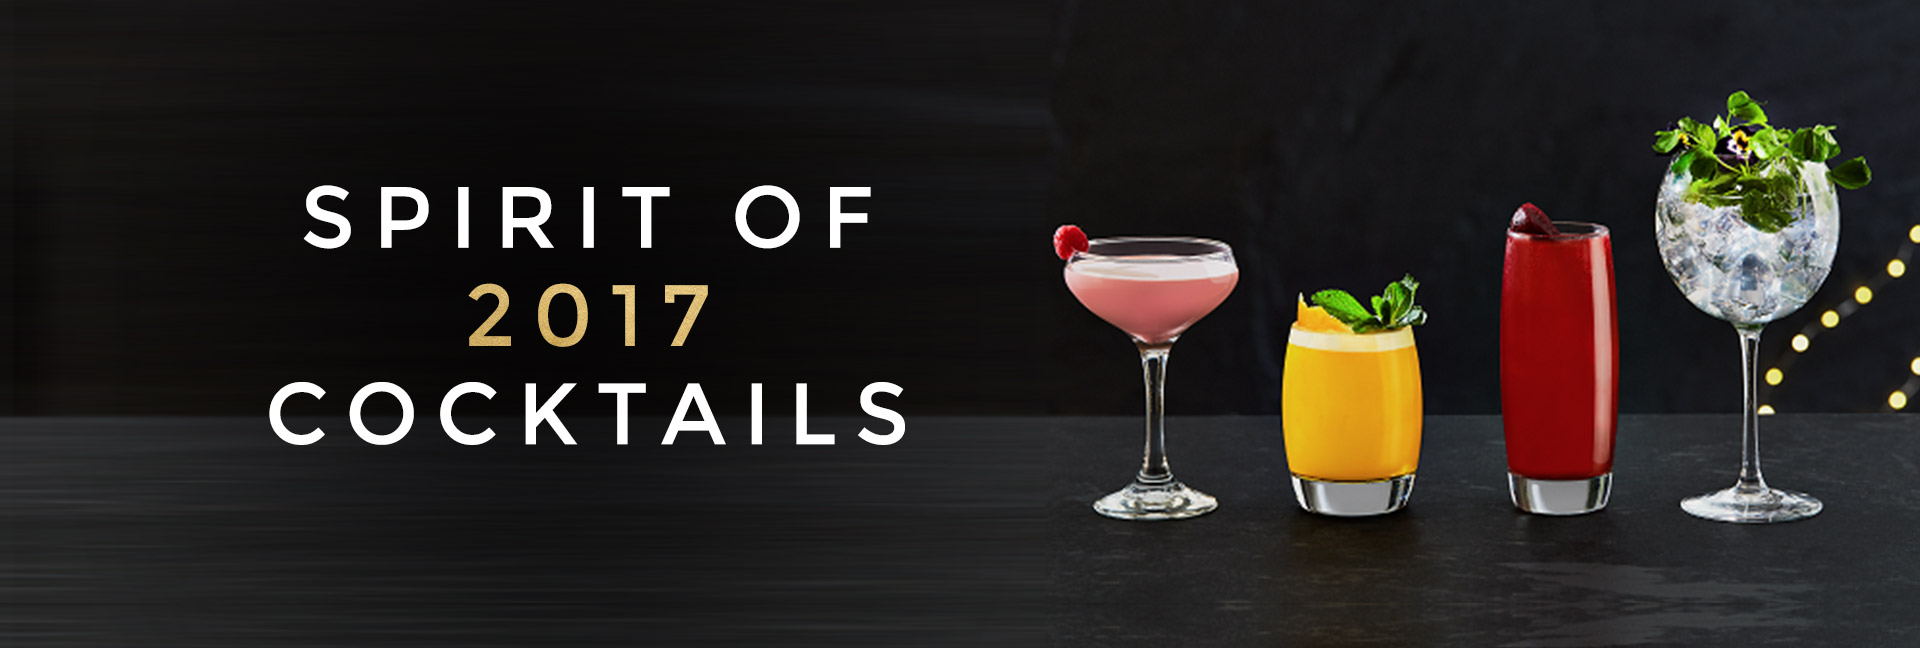 Spirit of 2017 cocktails at All Bar One Waterloo